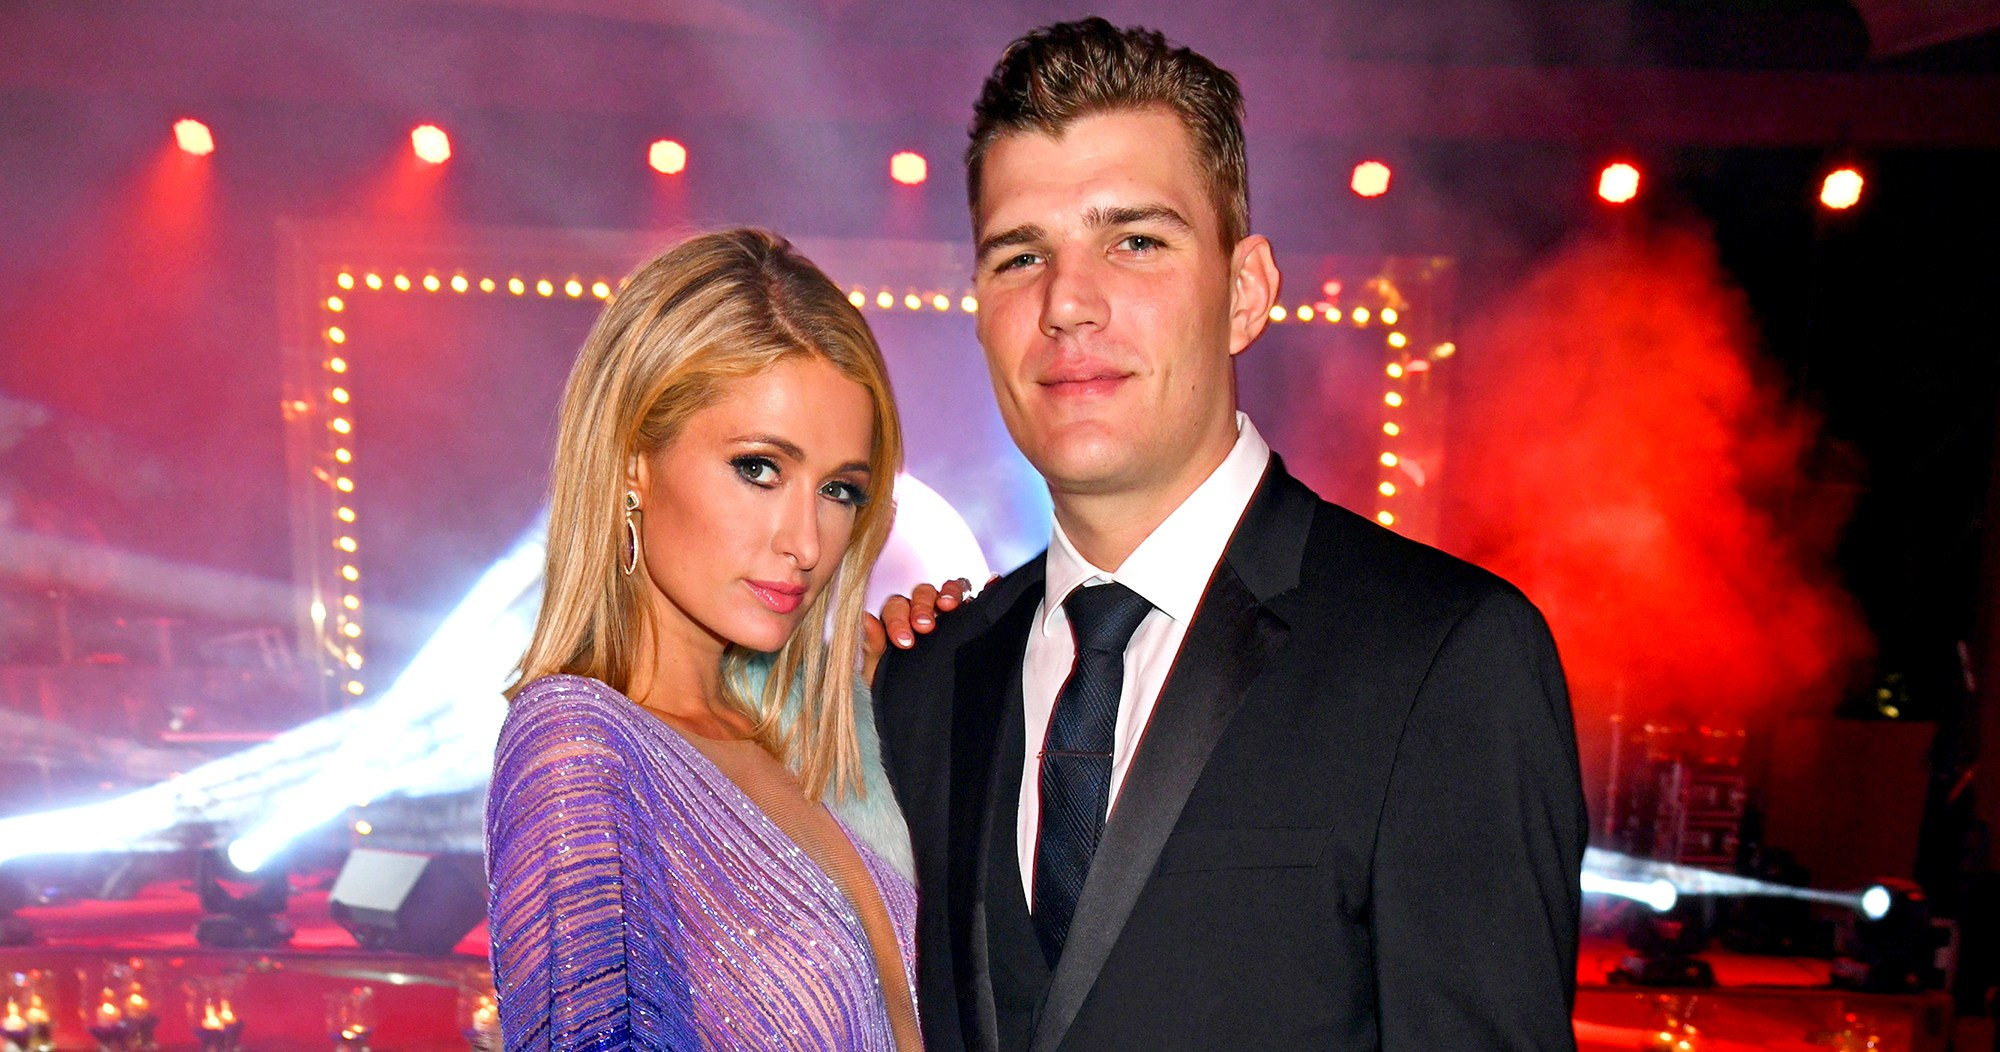 Destination, Guest List and More! Everything to Know About Paris Hilton and Chris Zylka's Wedding